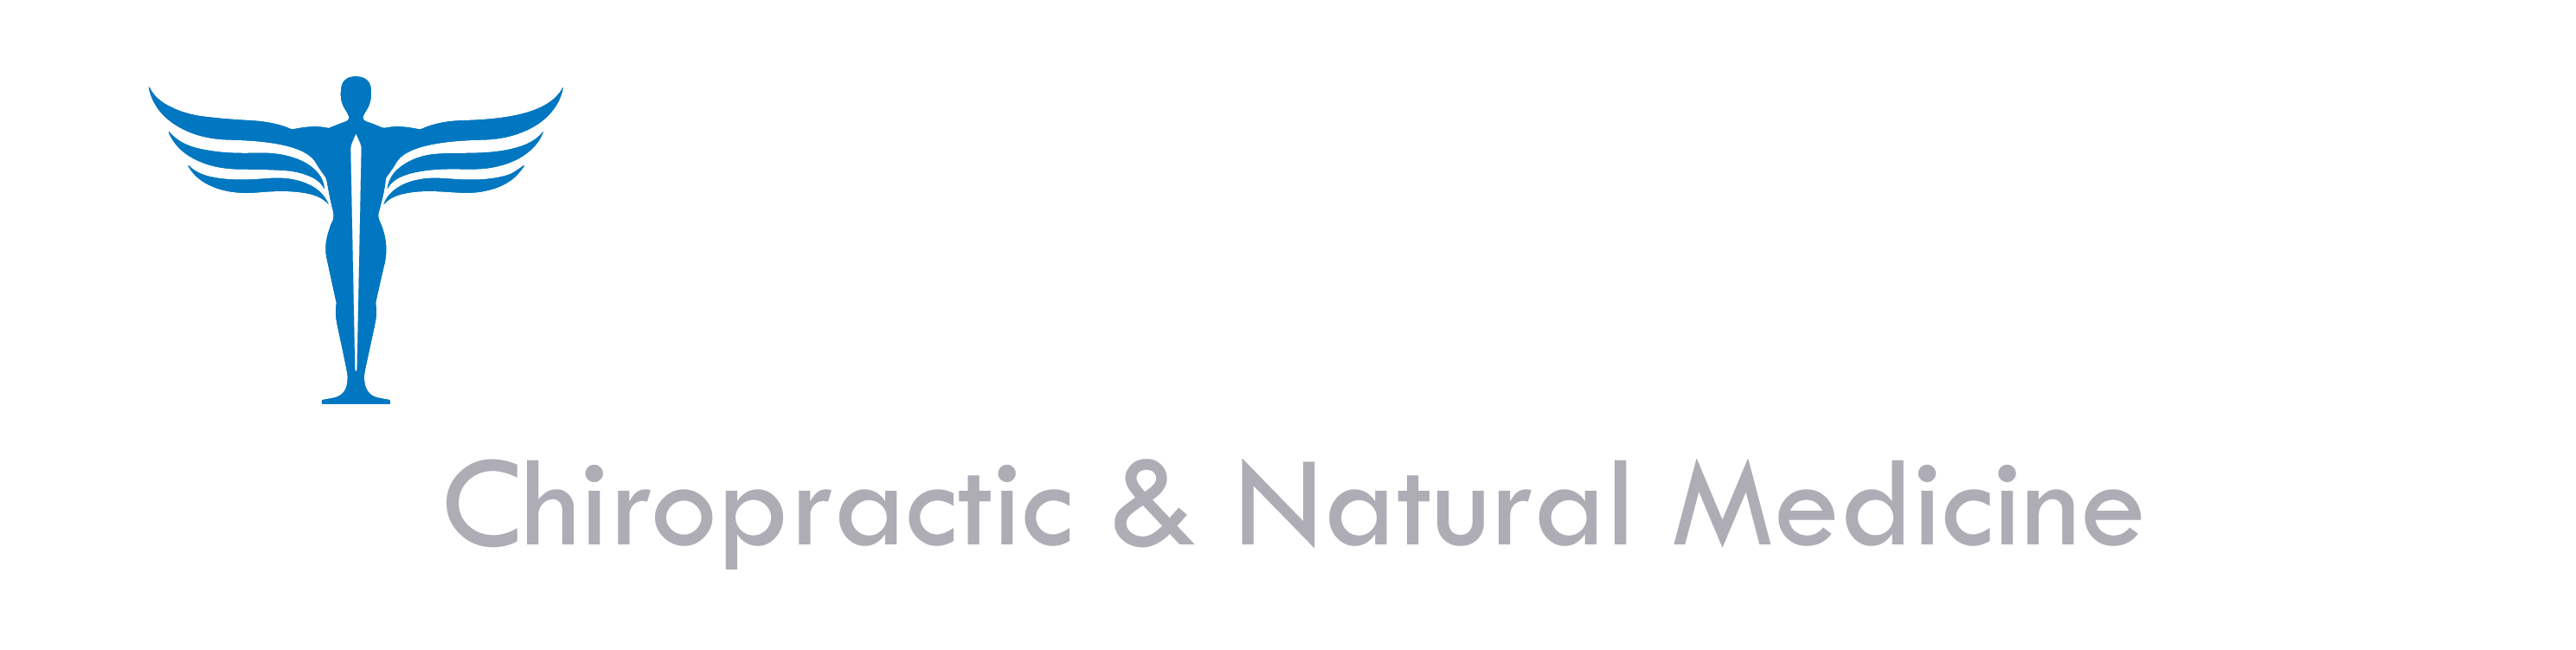 Natural Health Houston